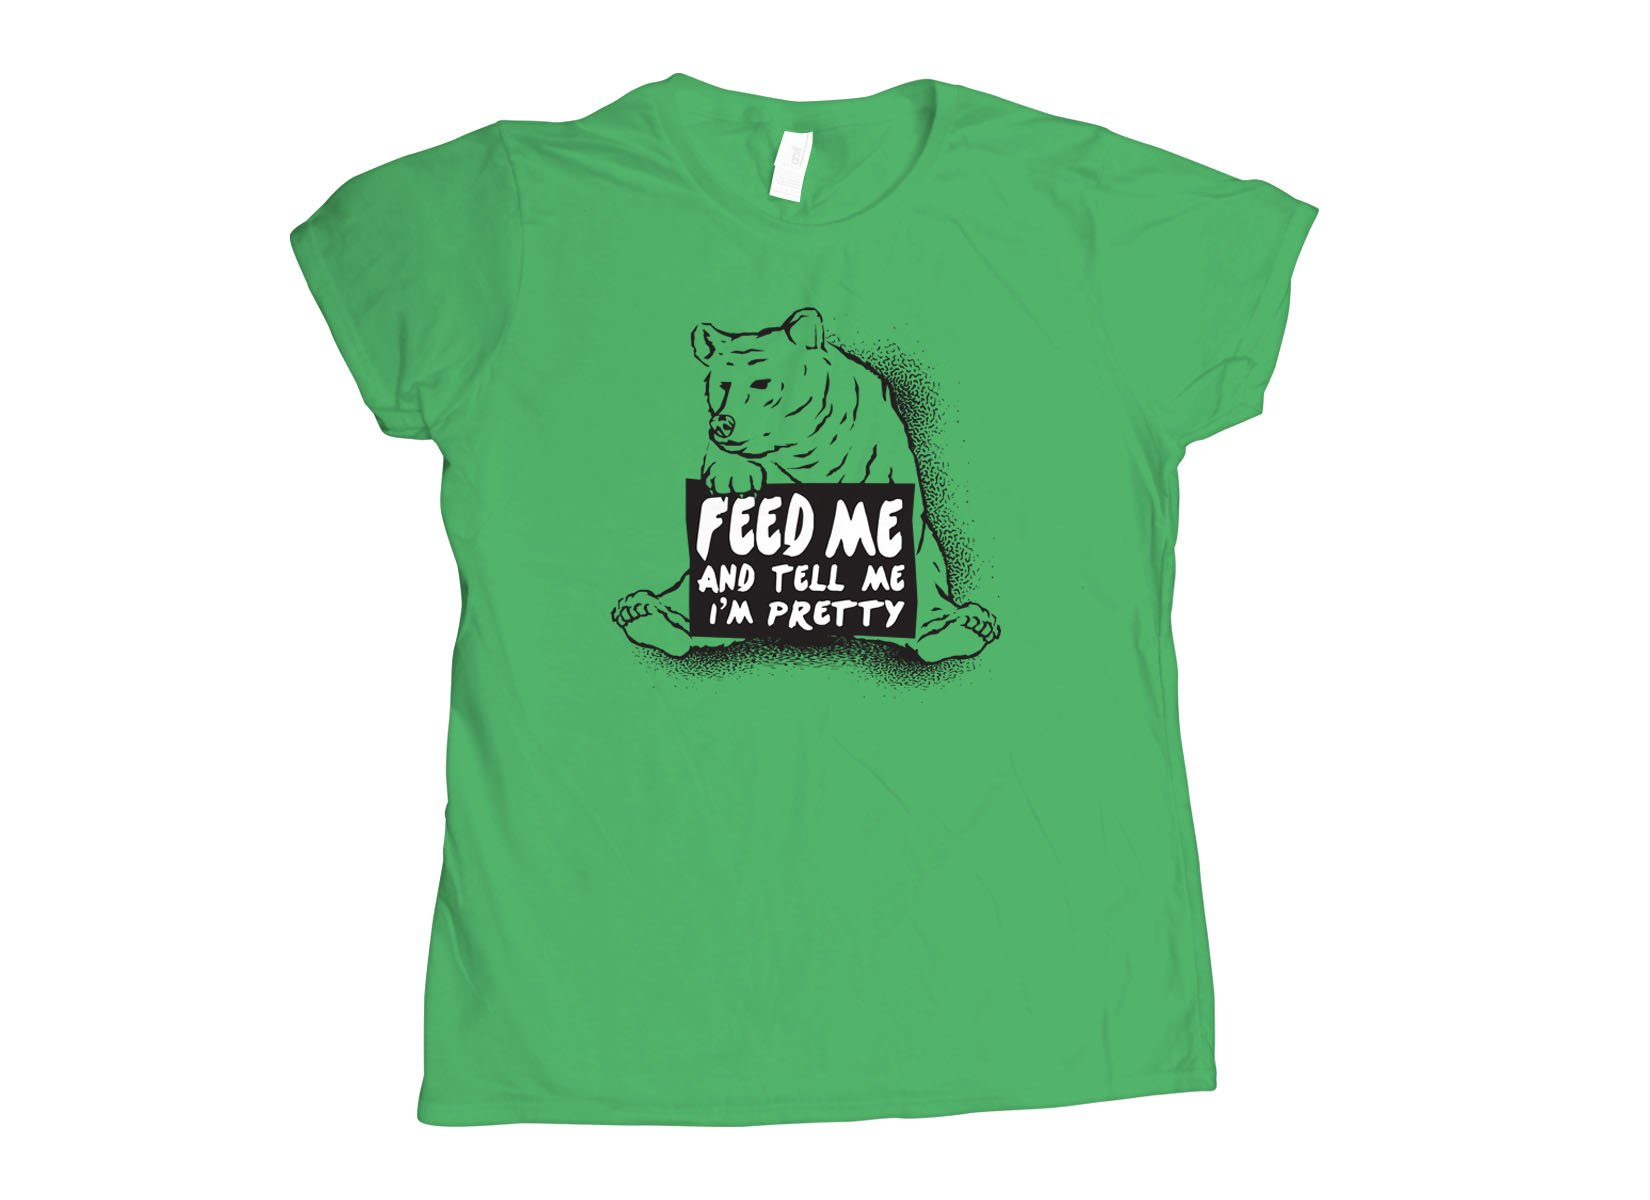 Feed Me on Womens T-Shirt